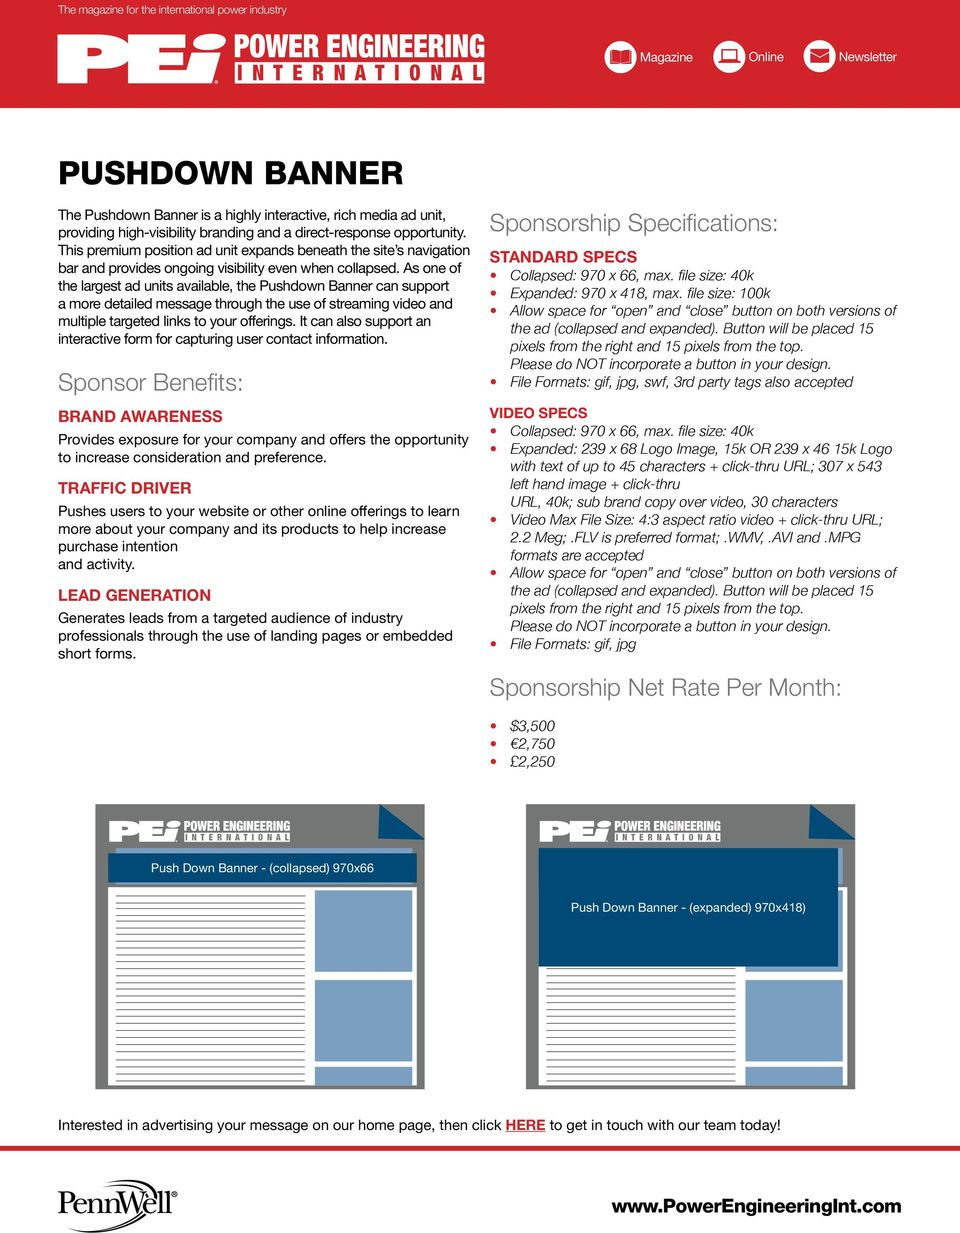 As one of the largest ad units available, the Pushdown Banner can support a more detailed message through the use of streaming video and multiple targeted links to your offerings.